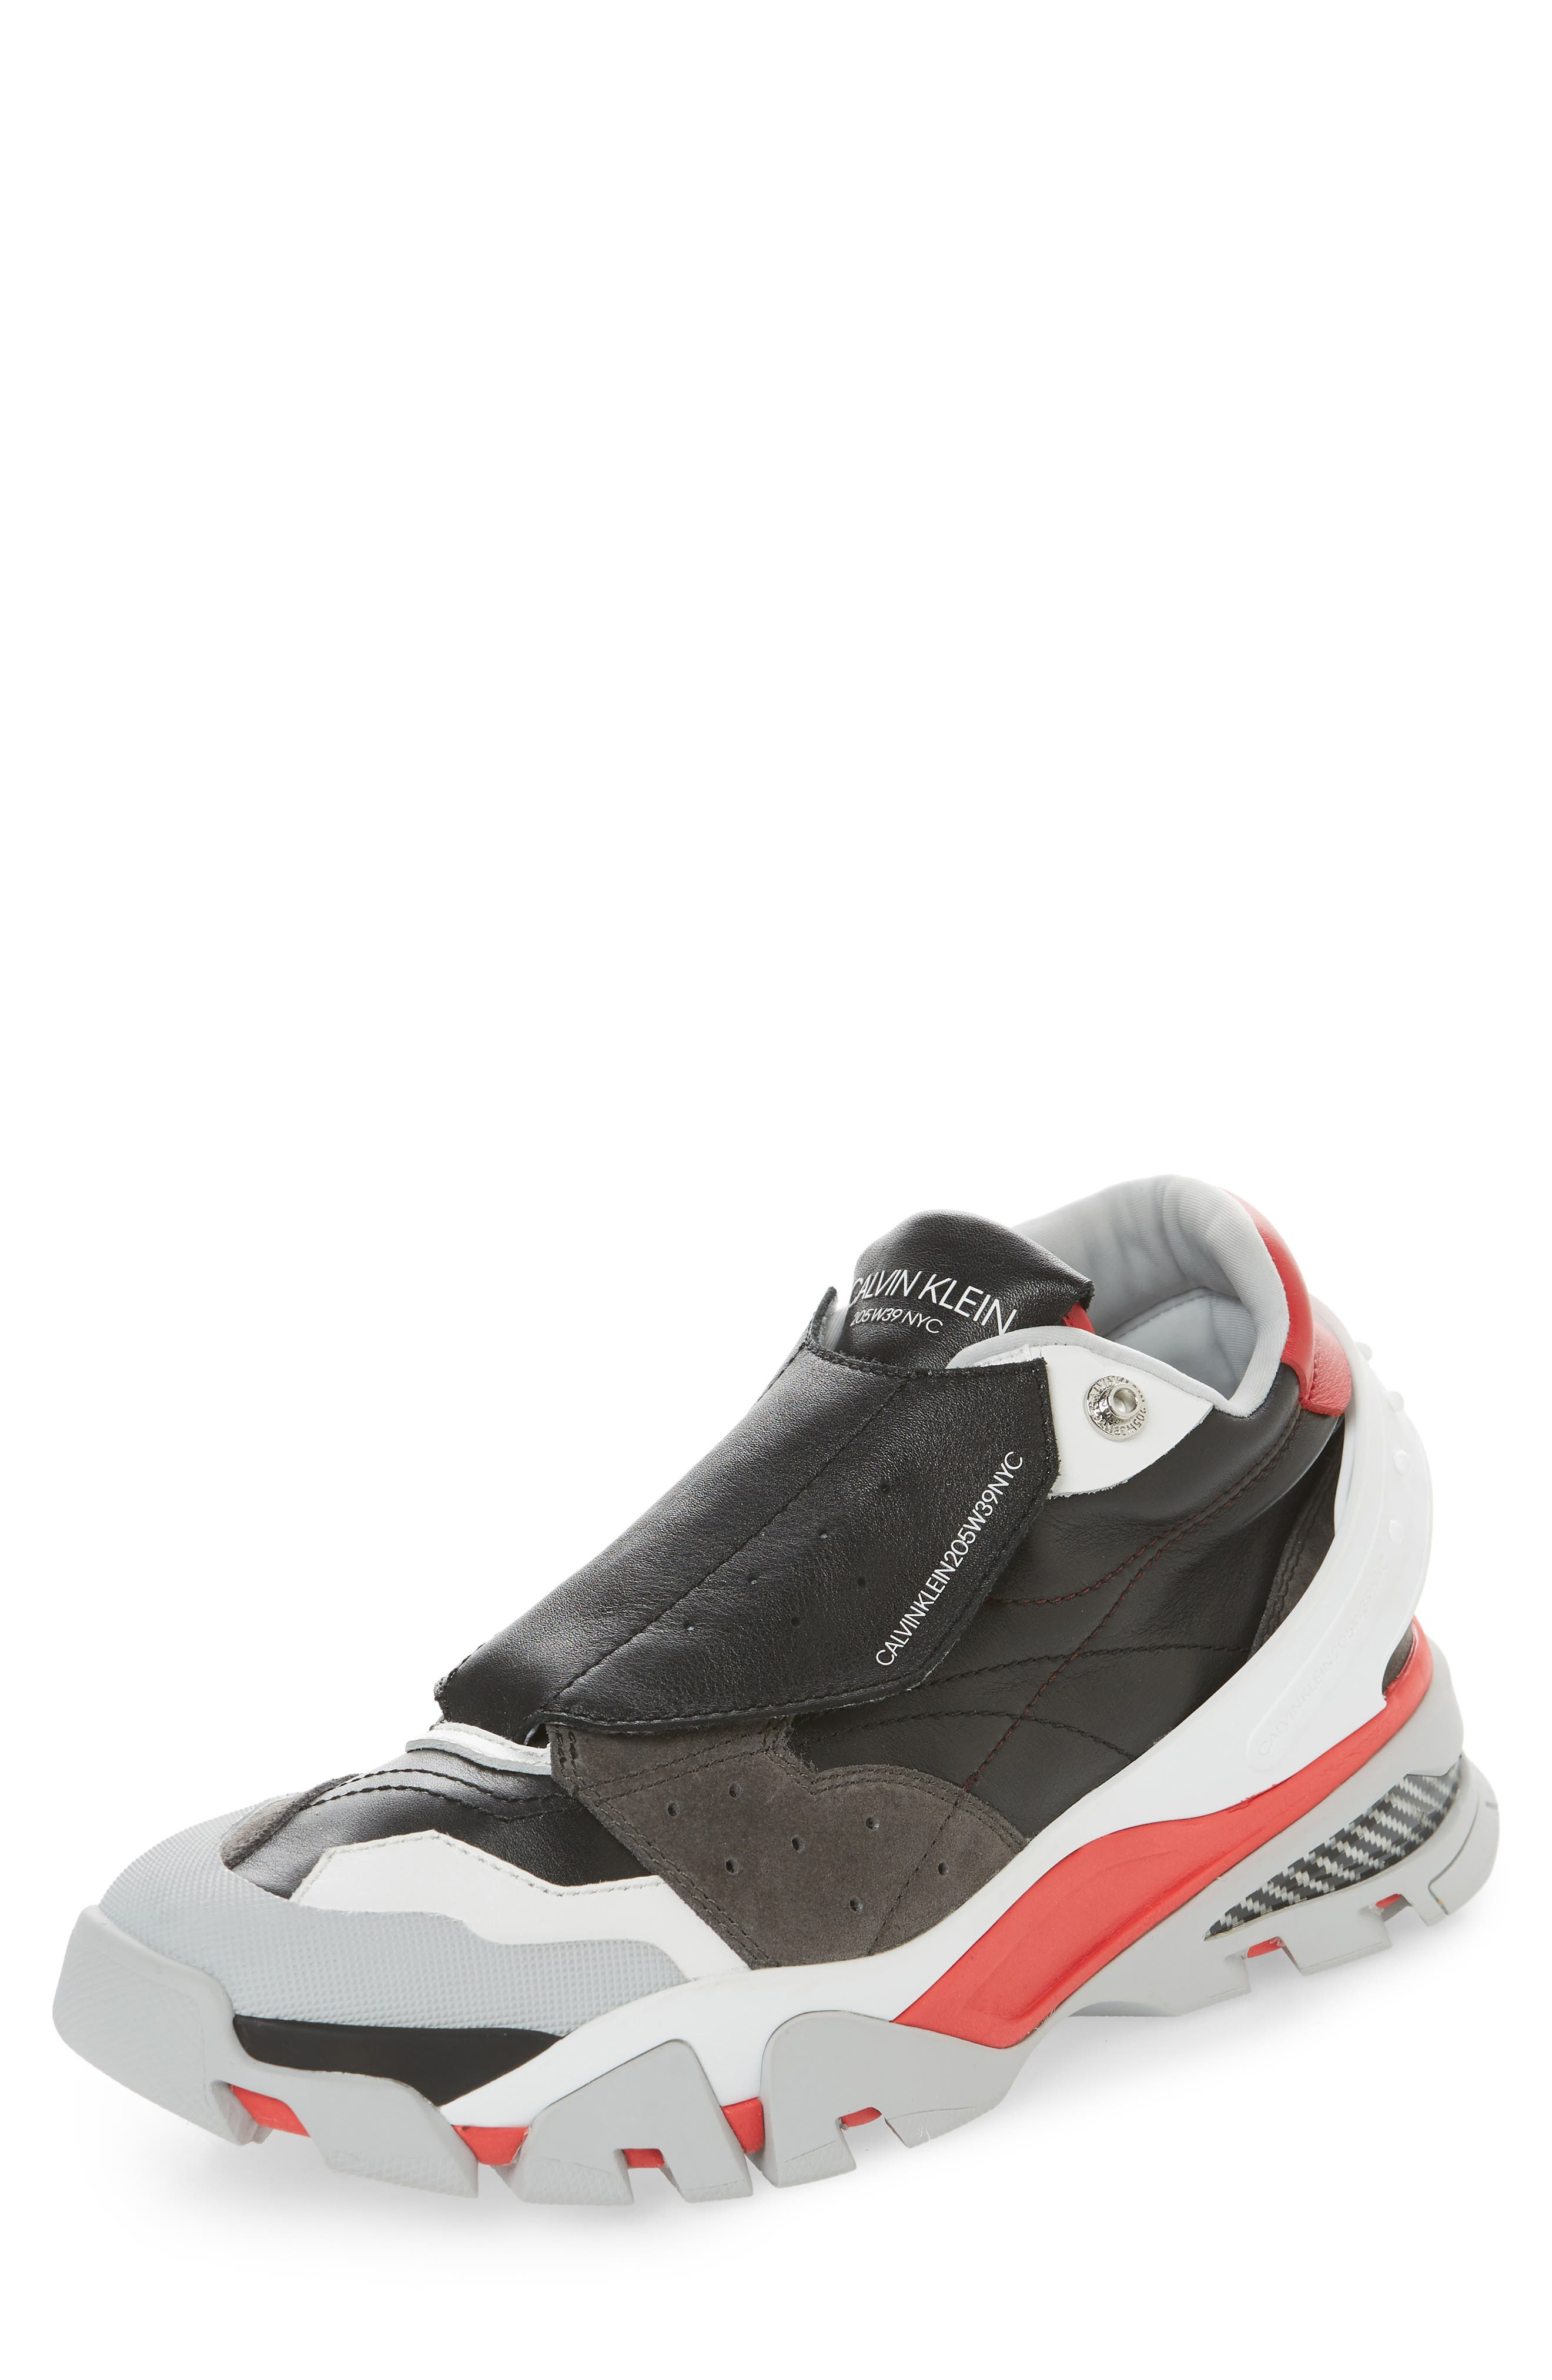 Cander 7 Sneaker,                         Main,                         color, BLACK/ WHITE/ RED/ GREY